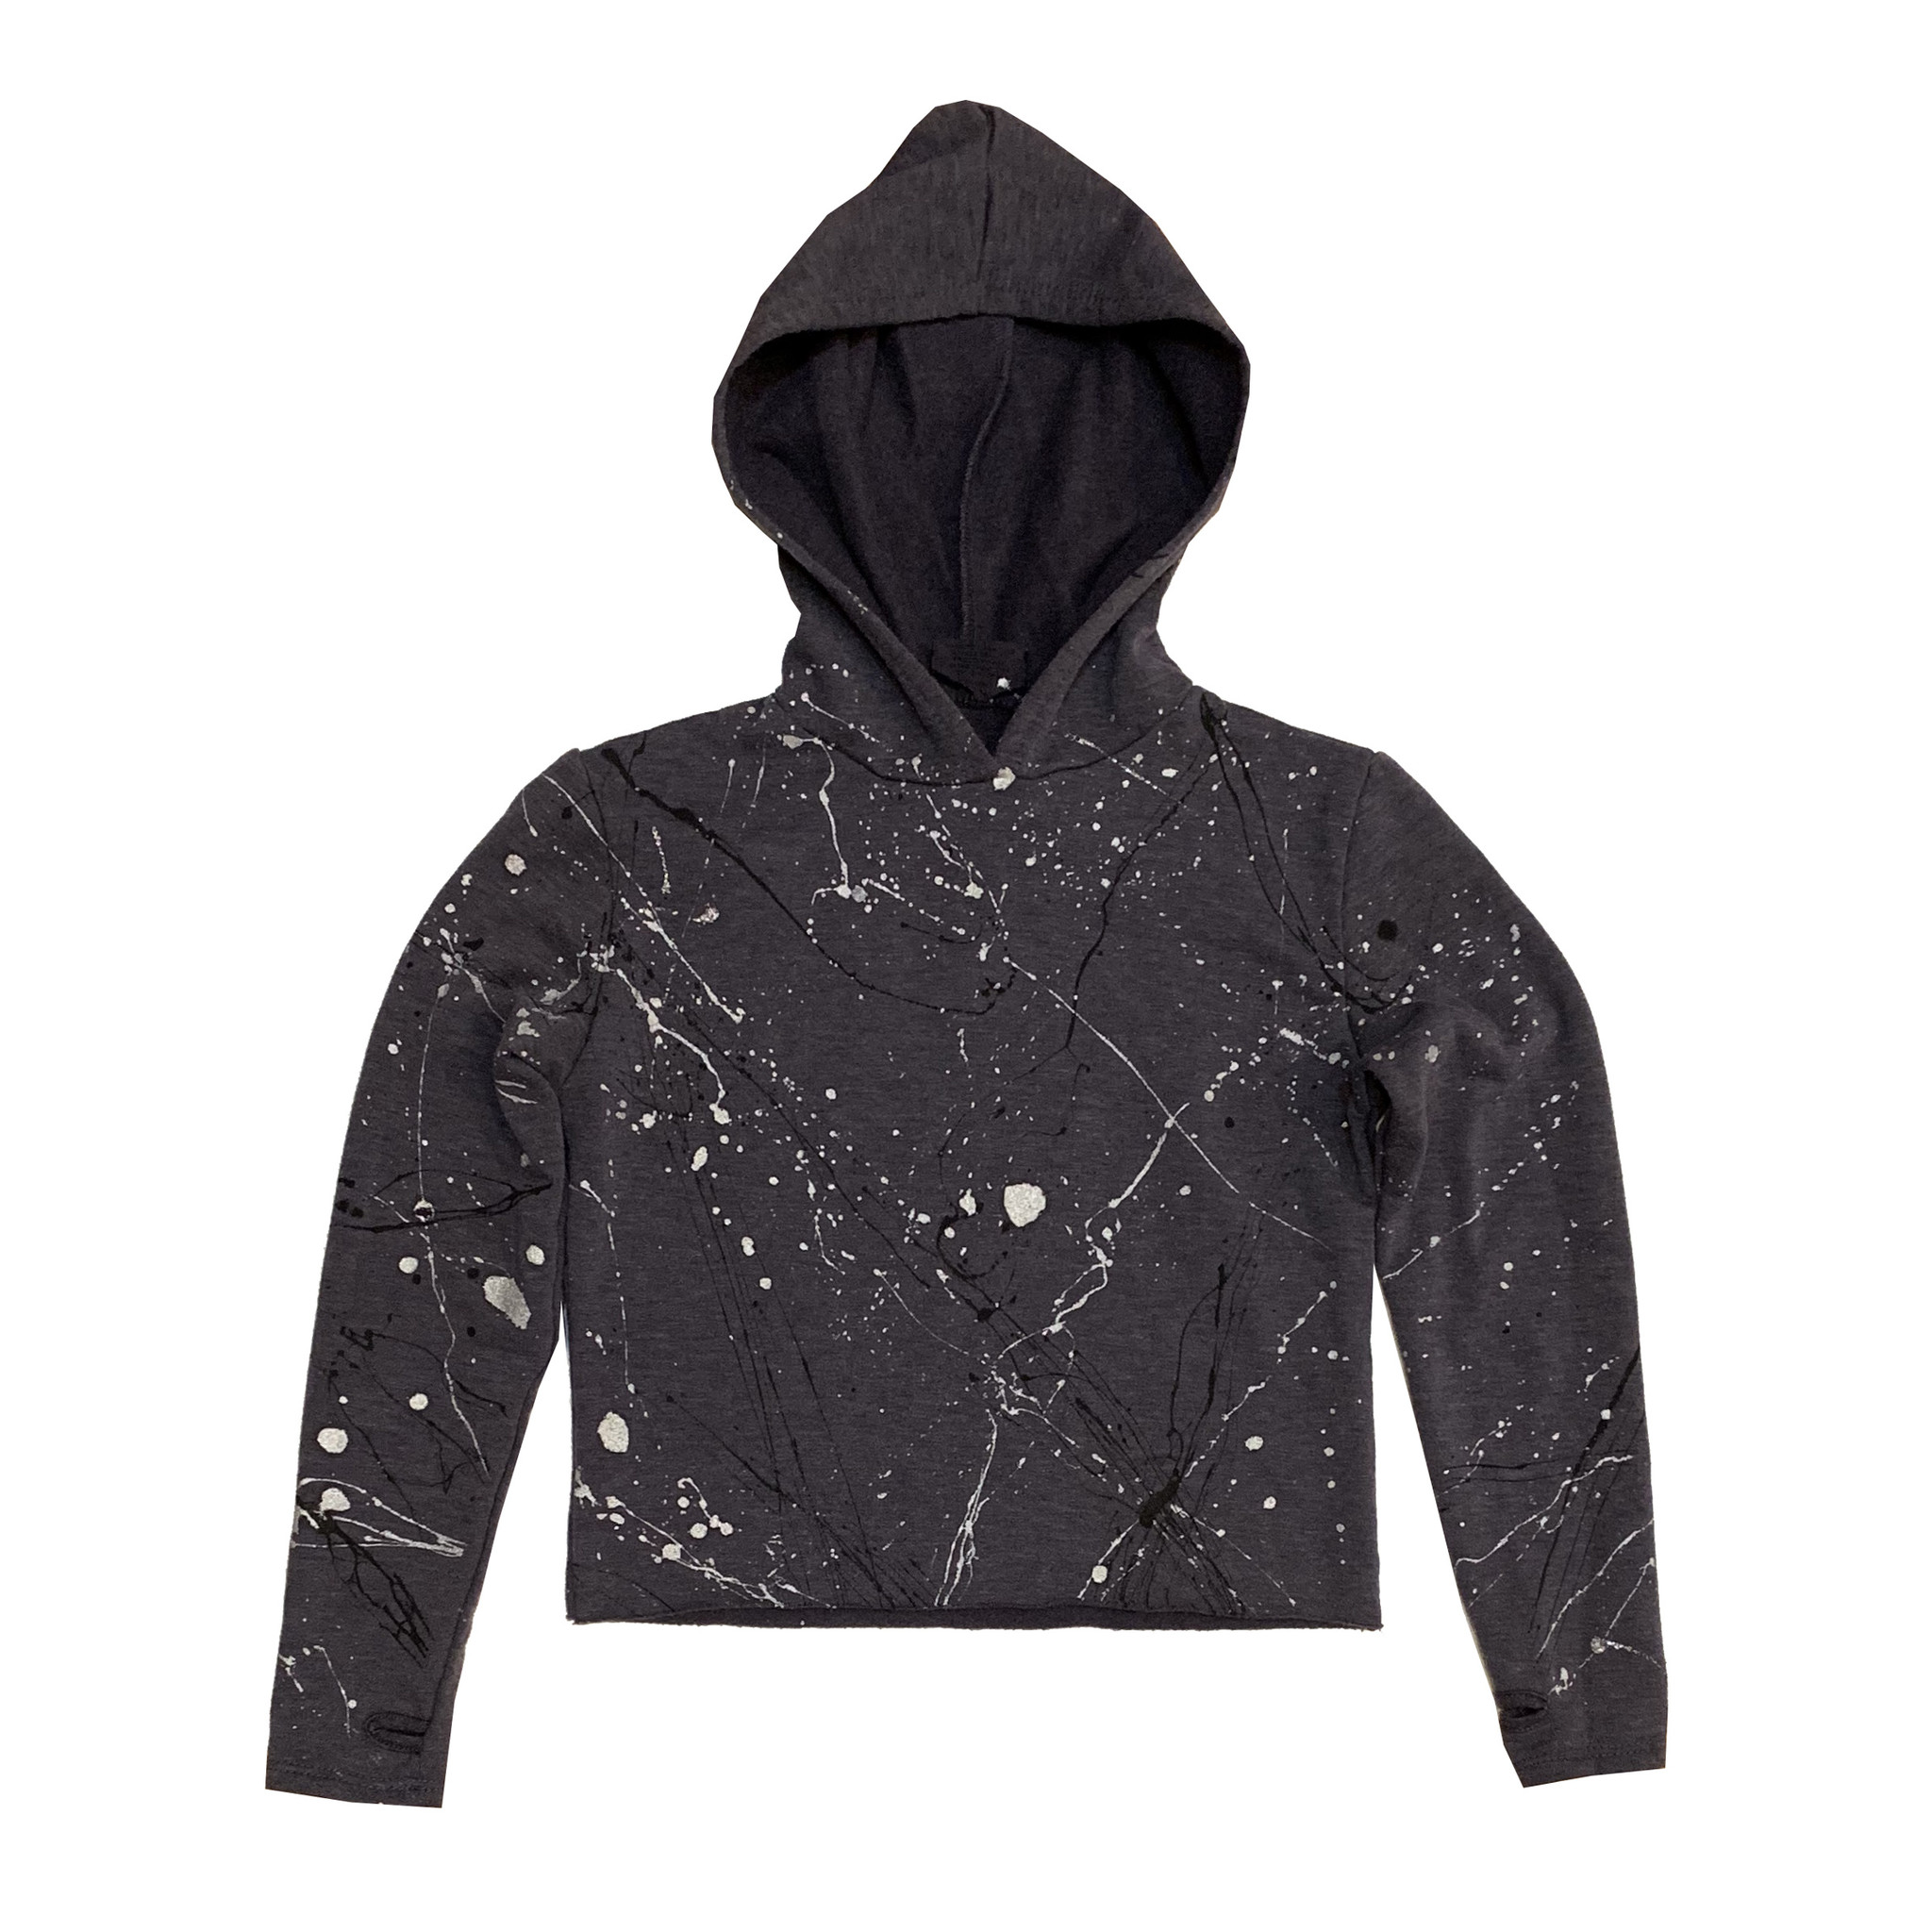 Firehouse Charcoal Metallic Splatter Cropped Pullover